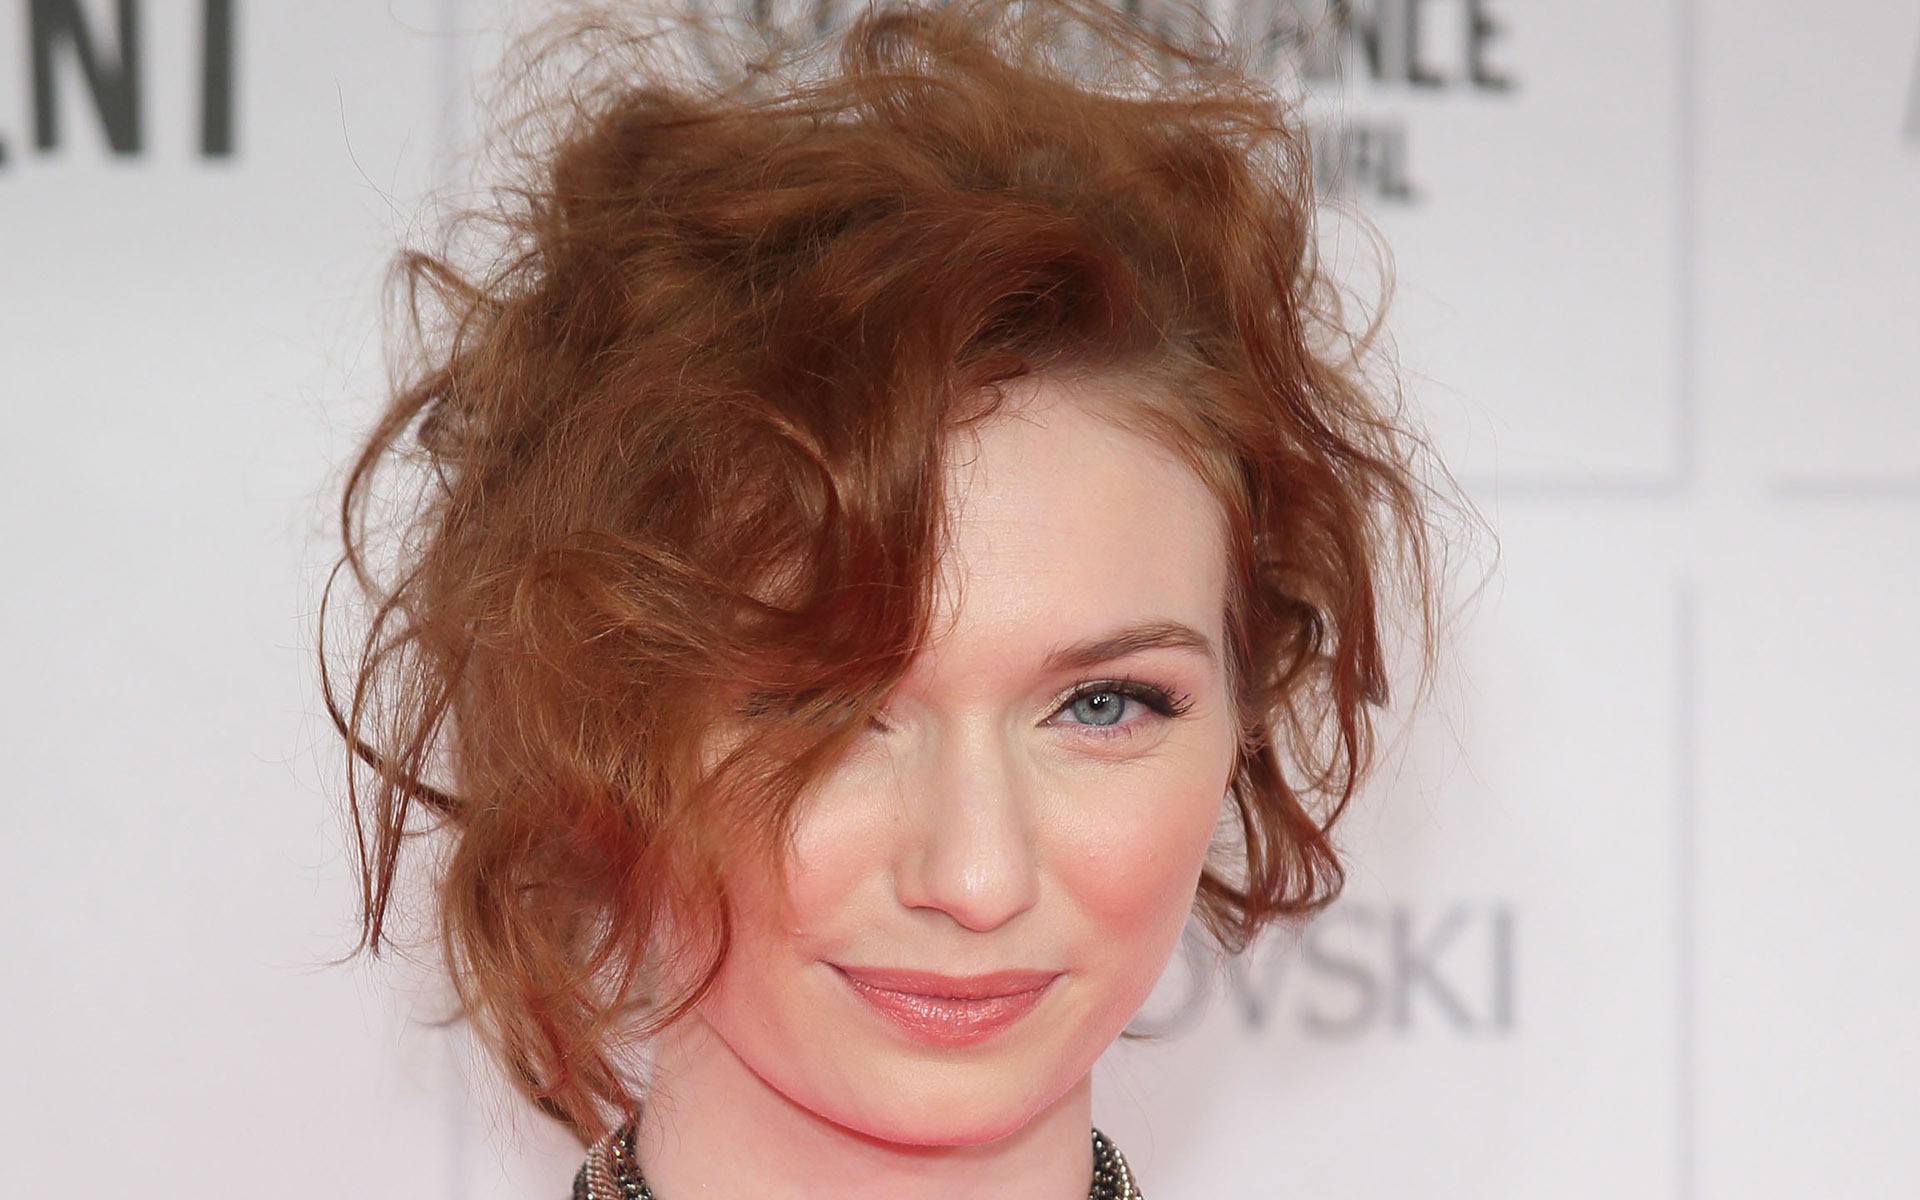 eleanor tomlinson siteeleanor tomlinson gif, eleanor tomlinson gif hunt, eleanor tomlinson poldark, eleanor tomlinson site, eleanor tomlinson height, eleanor tomlinson - medhel an gwyns, eleanor tomlinson photoshoot, eleanor tomlinson songs, eleanor tomlinson and louis tomlinson, eleanor tomlinson and aidan turner relationship, eleanor tomlinson scene, eleanor tomlinson listal, eleanor tomlinson imdb, eleanor tomlinson tattoo, eleanor tomlinson height weight, eleanor tomlinson wikipedia, eleanor tomlinson screencaps, eleanor tomlinson education, eleanor tomlinson pregnant, eleanor tomlinson gif hunt tumblr